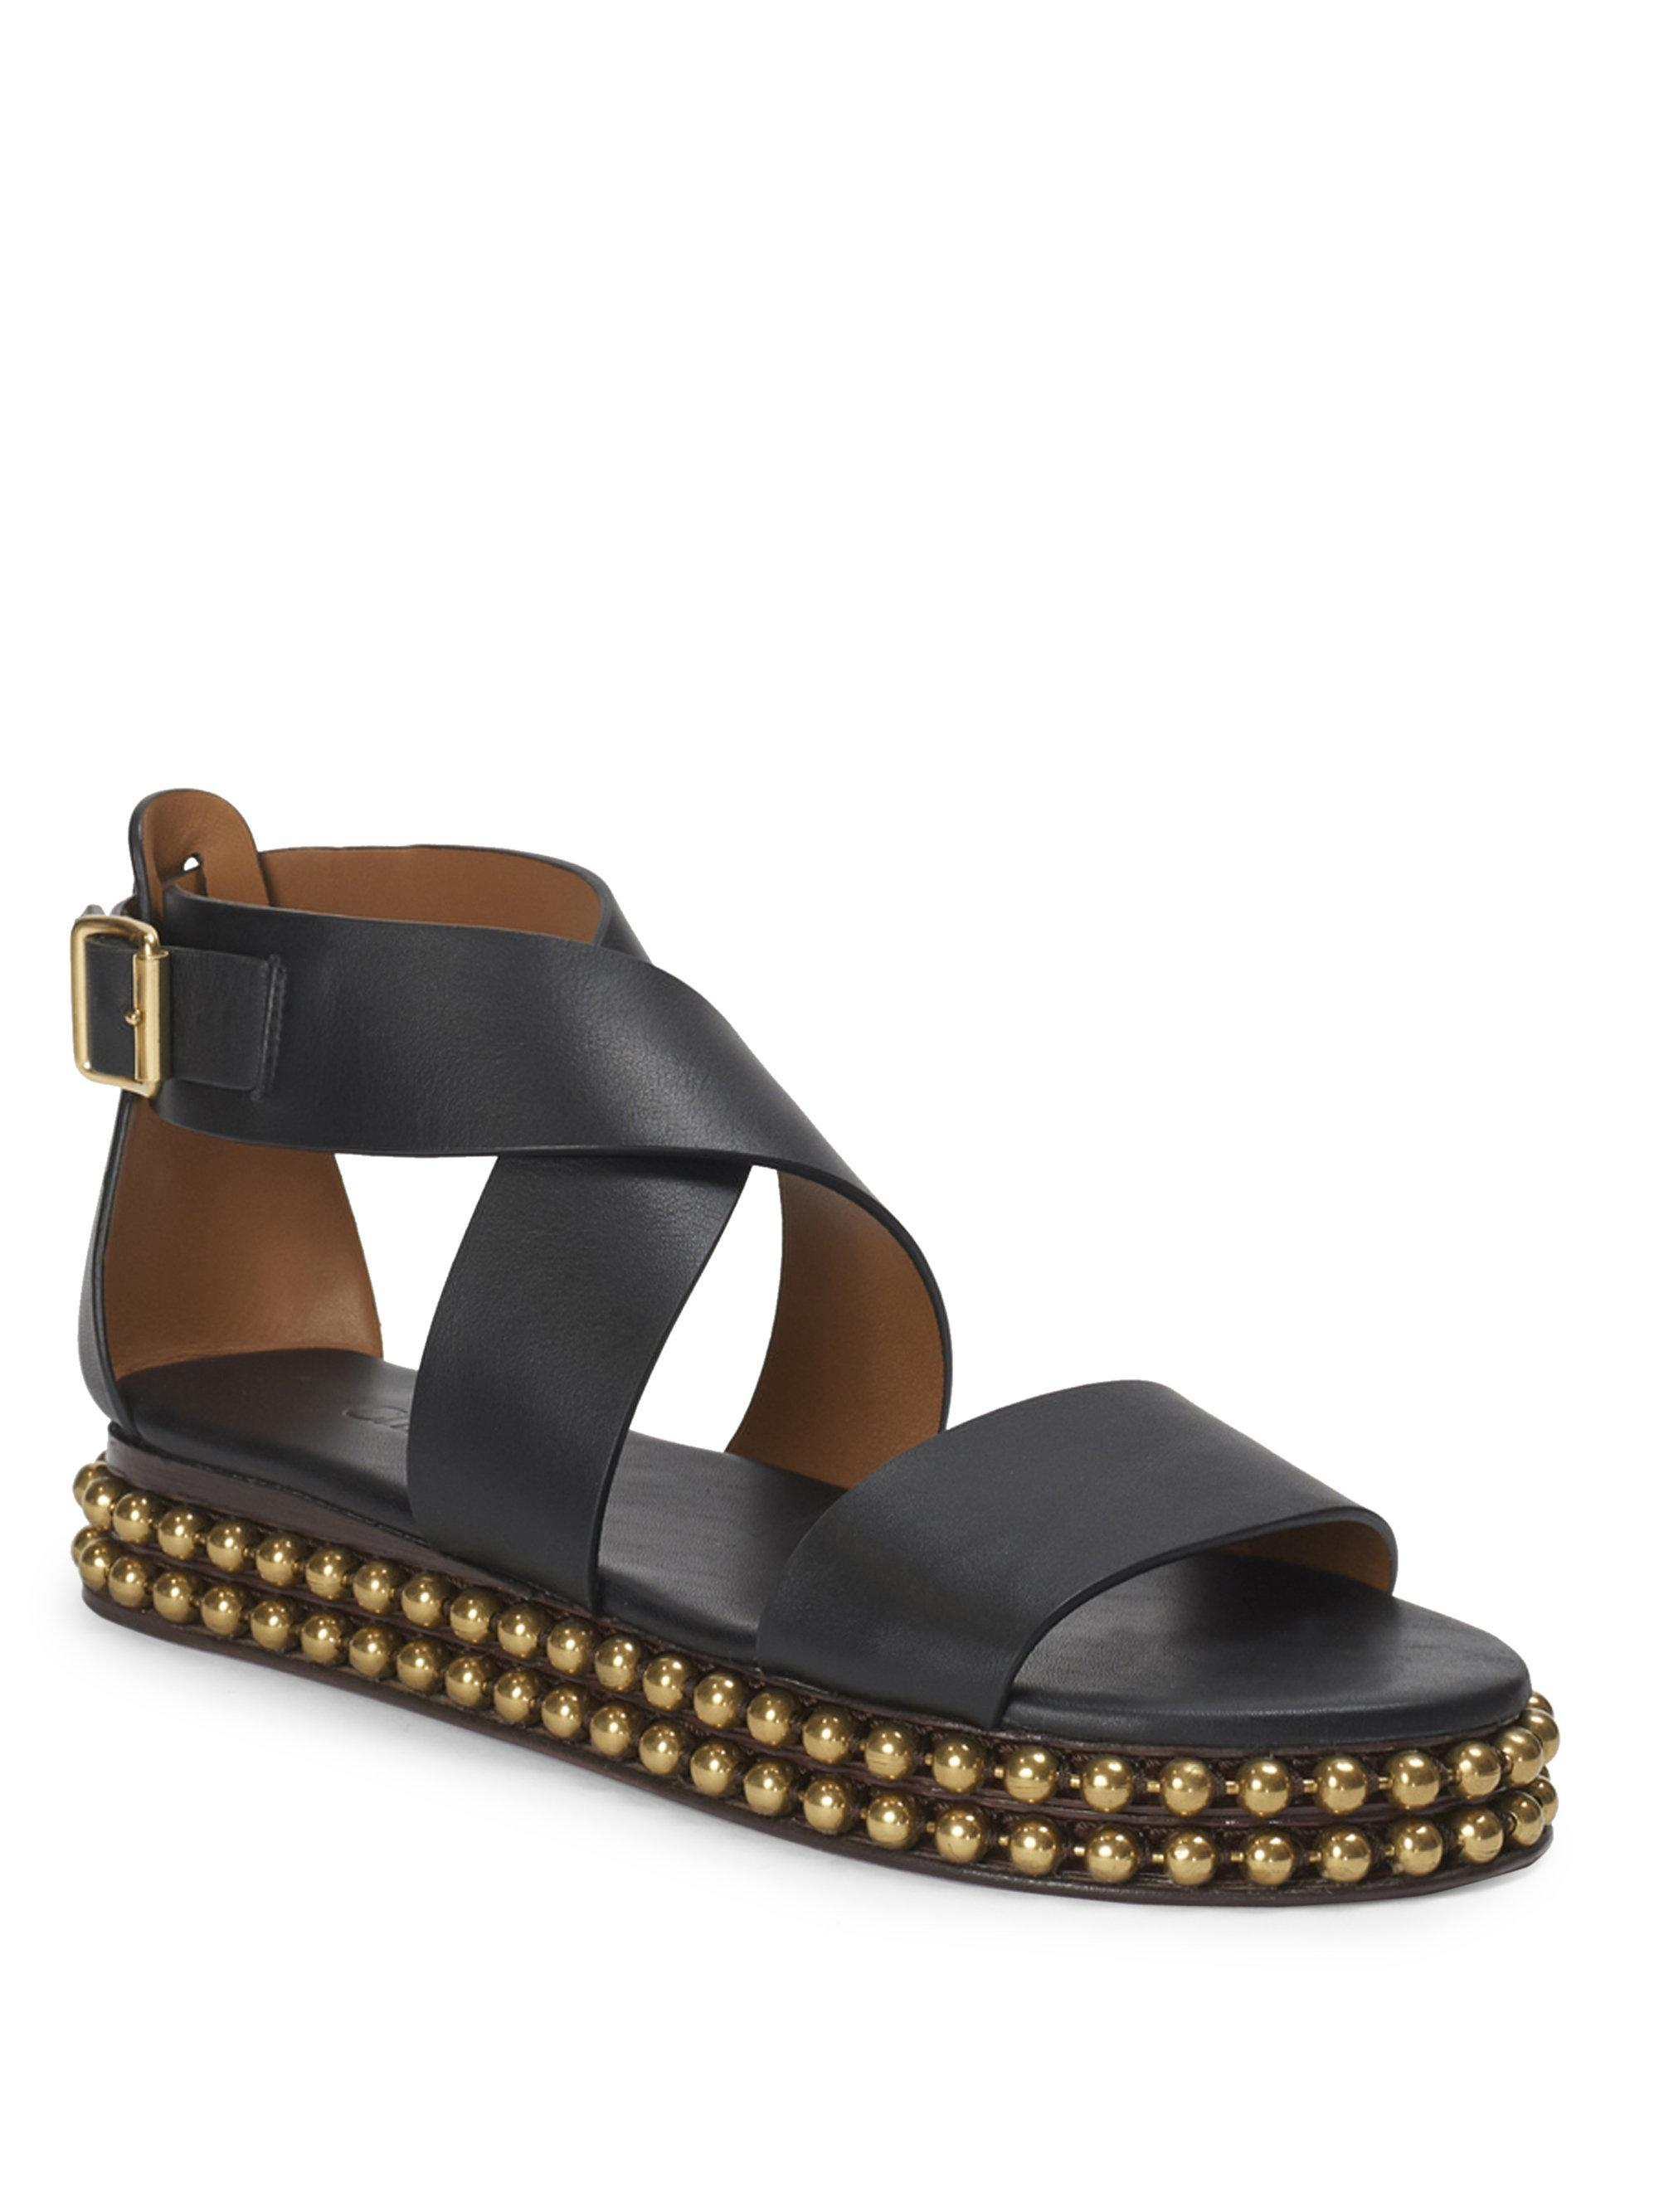 6a7ebd110a3364 Chloé Sawyer Studded Leather Wrap Gladiator Sandals in Black - Lyst